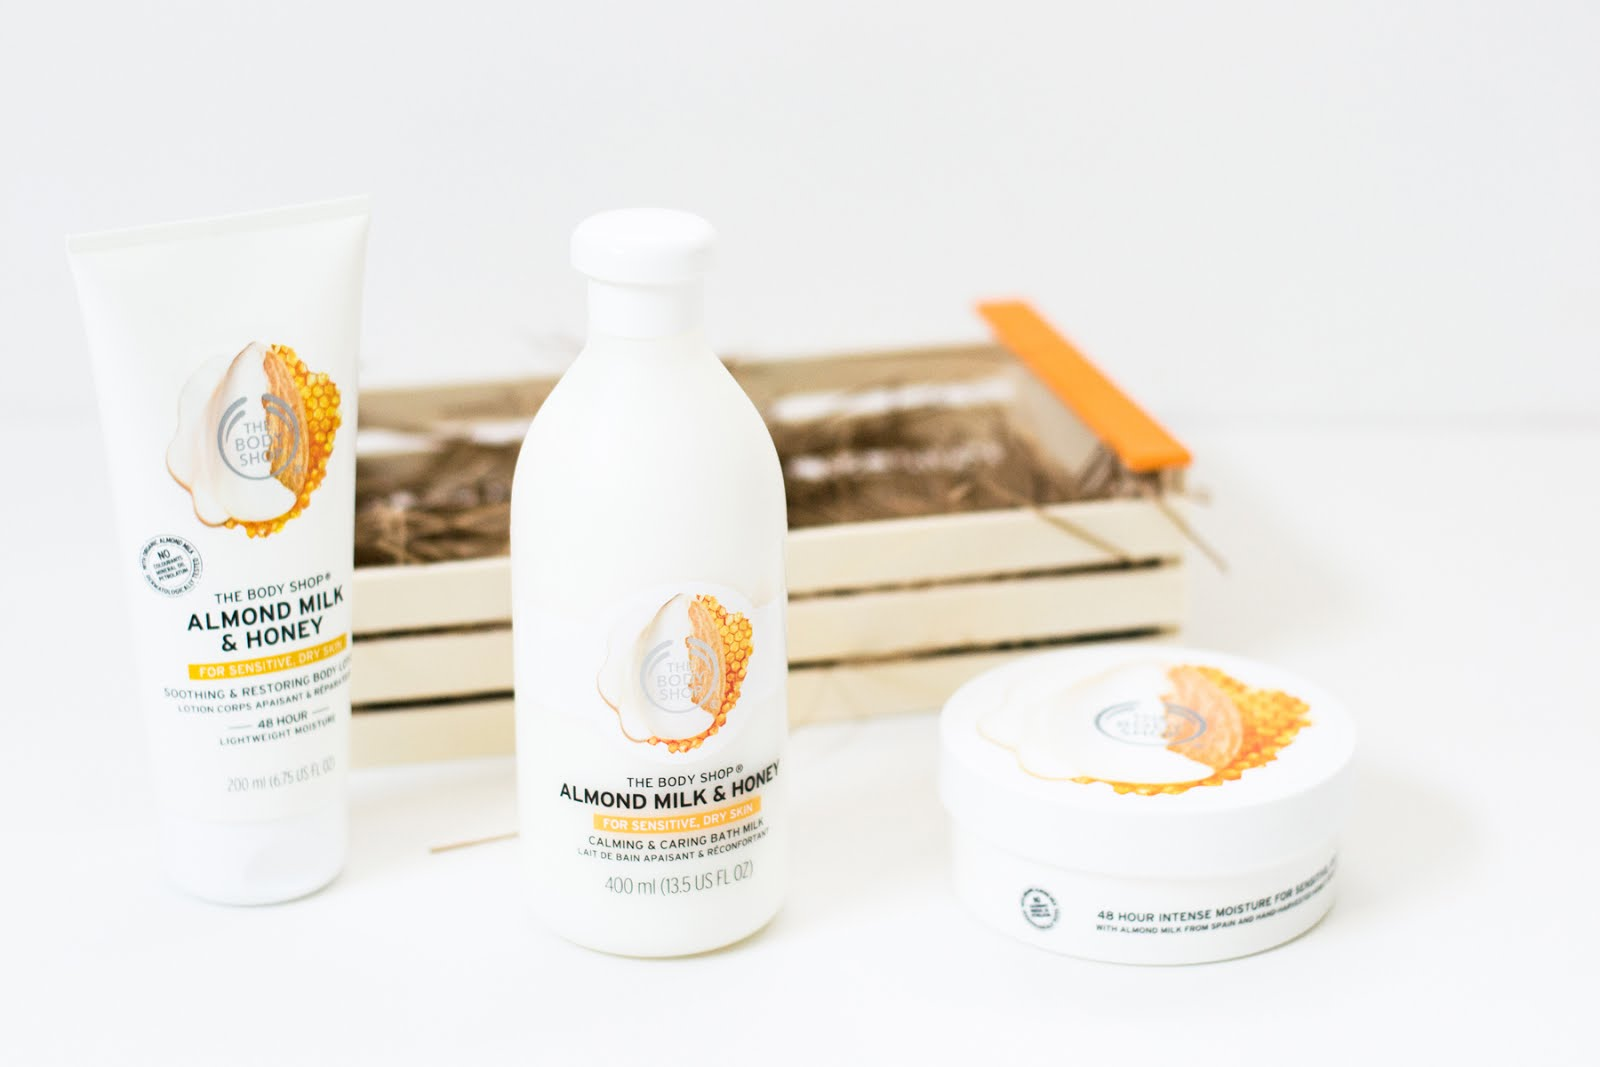 The bodyshop, almond milk & honey, body lotion, shower cream, bodybutter